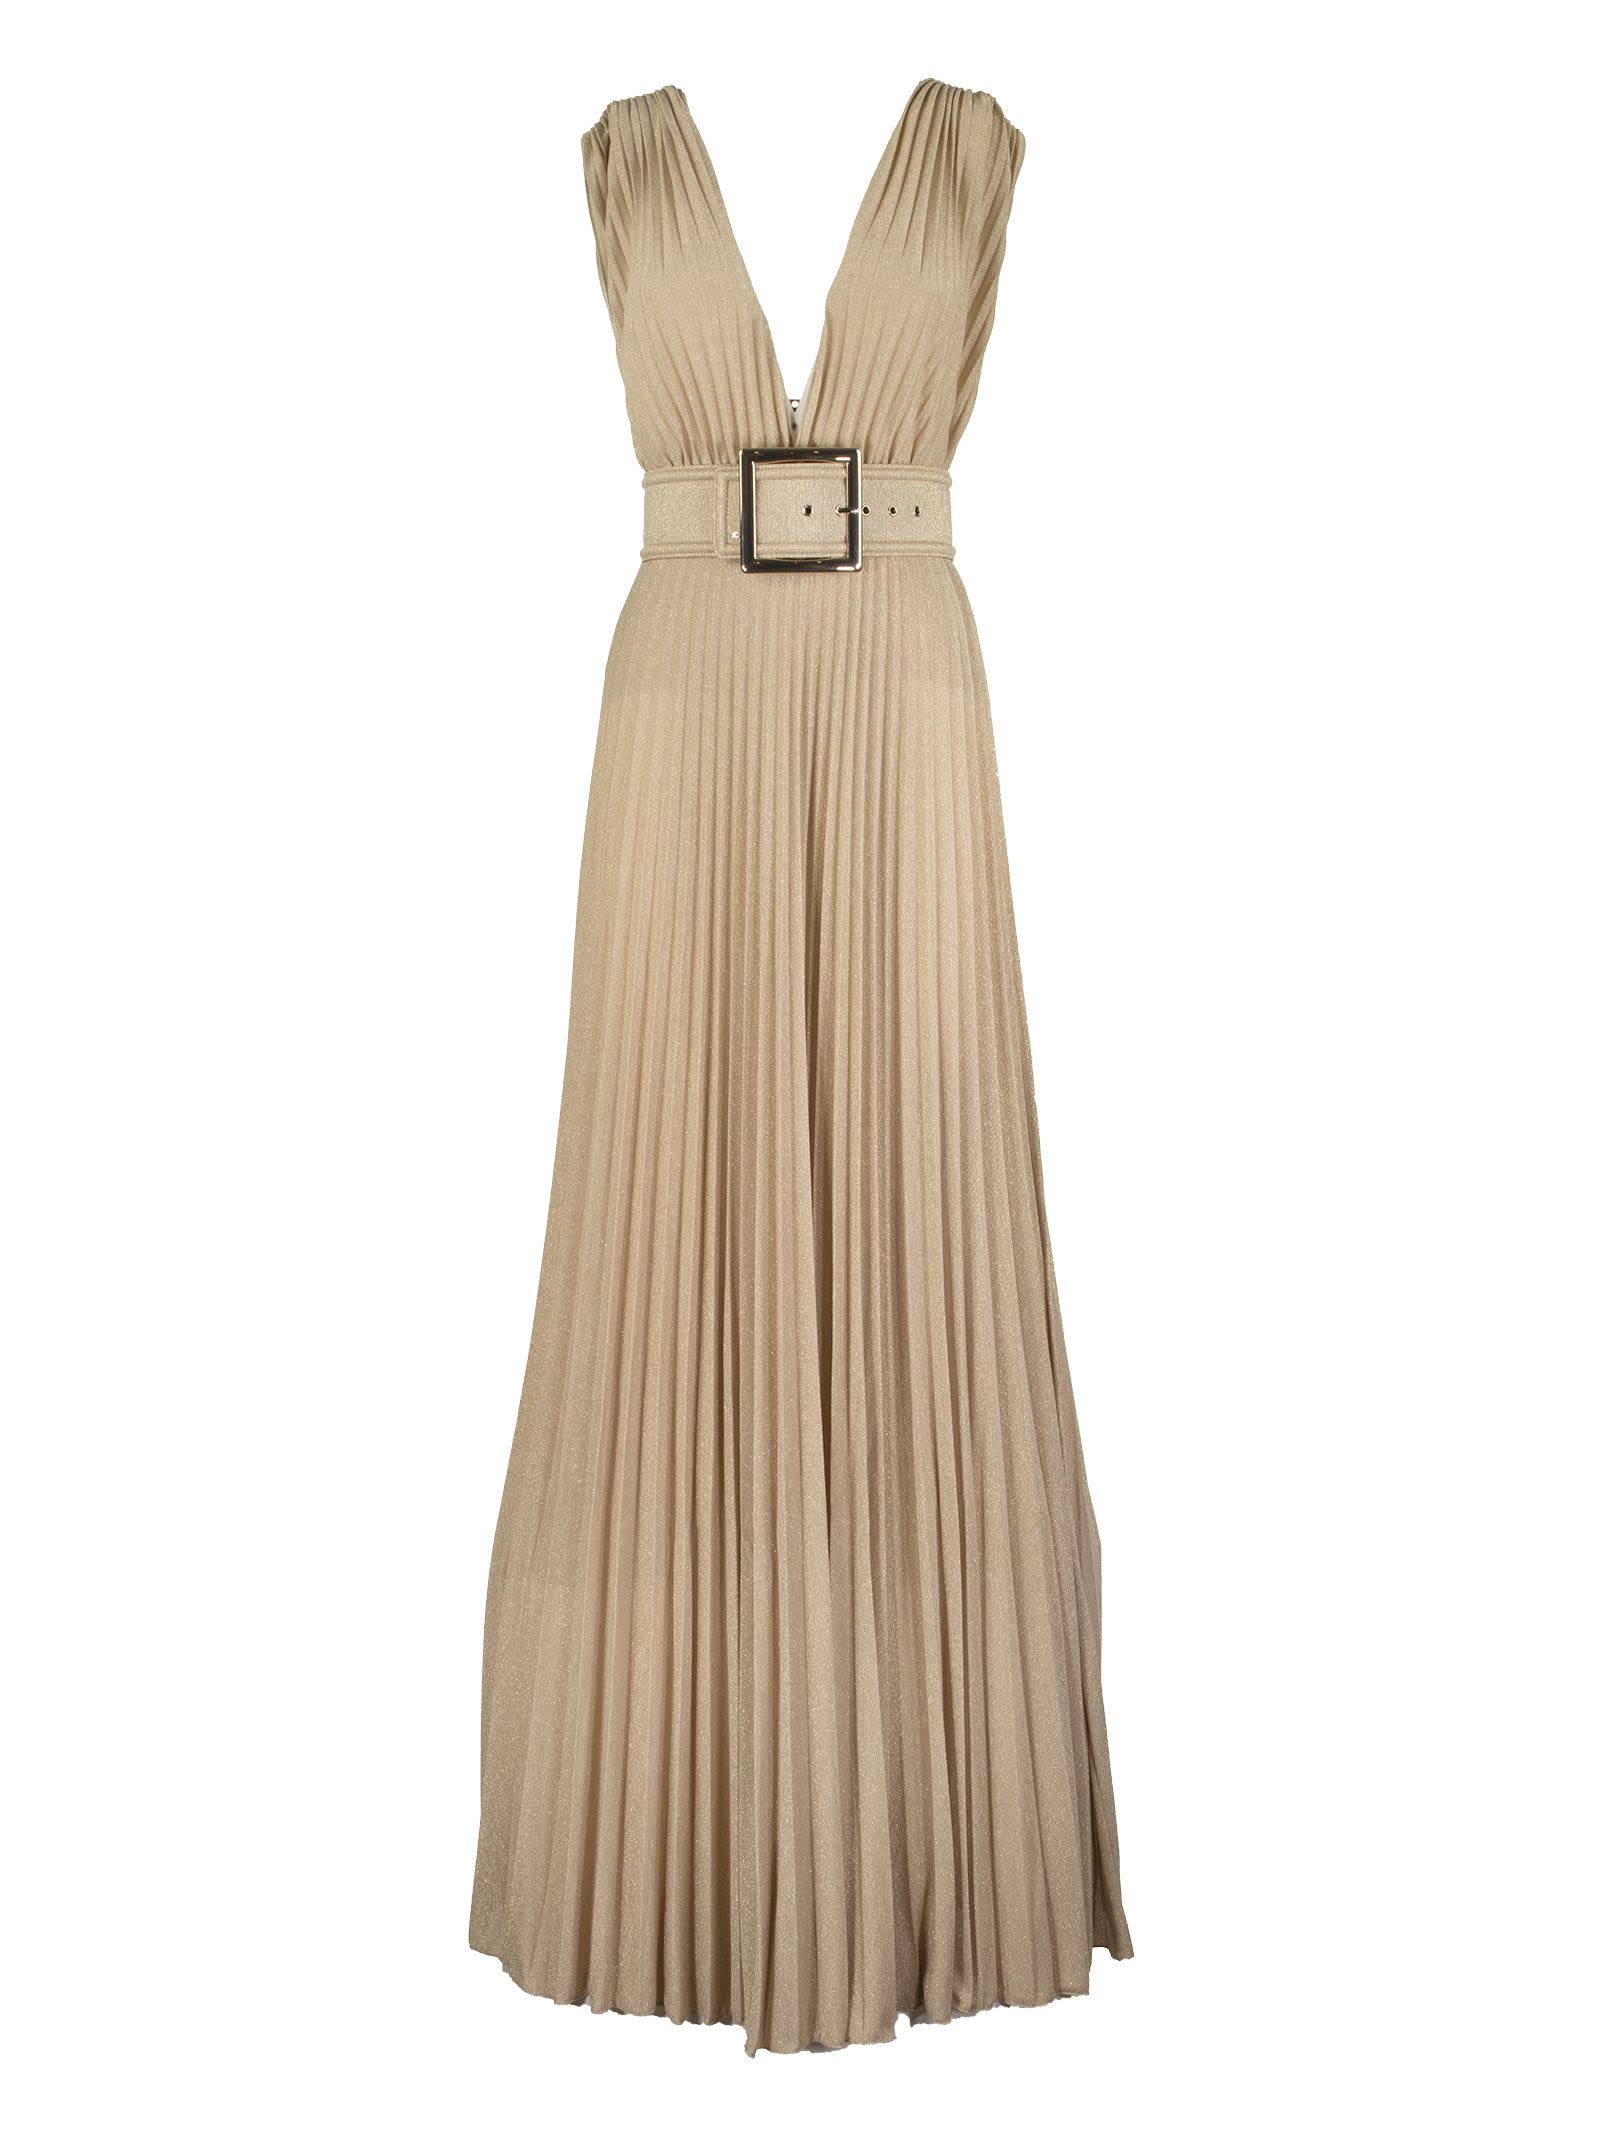 Buy Elisabetta Franchi Celyn B. Maxi Dress With Side Slit online, shop Elisabetta Franchi Celyn B. with free shipping